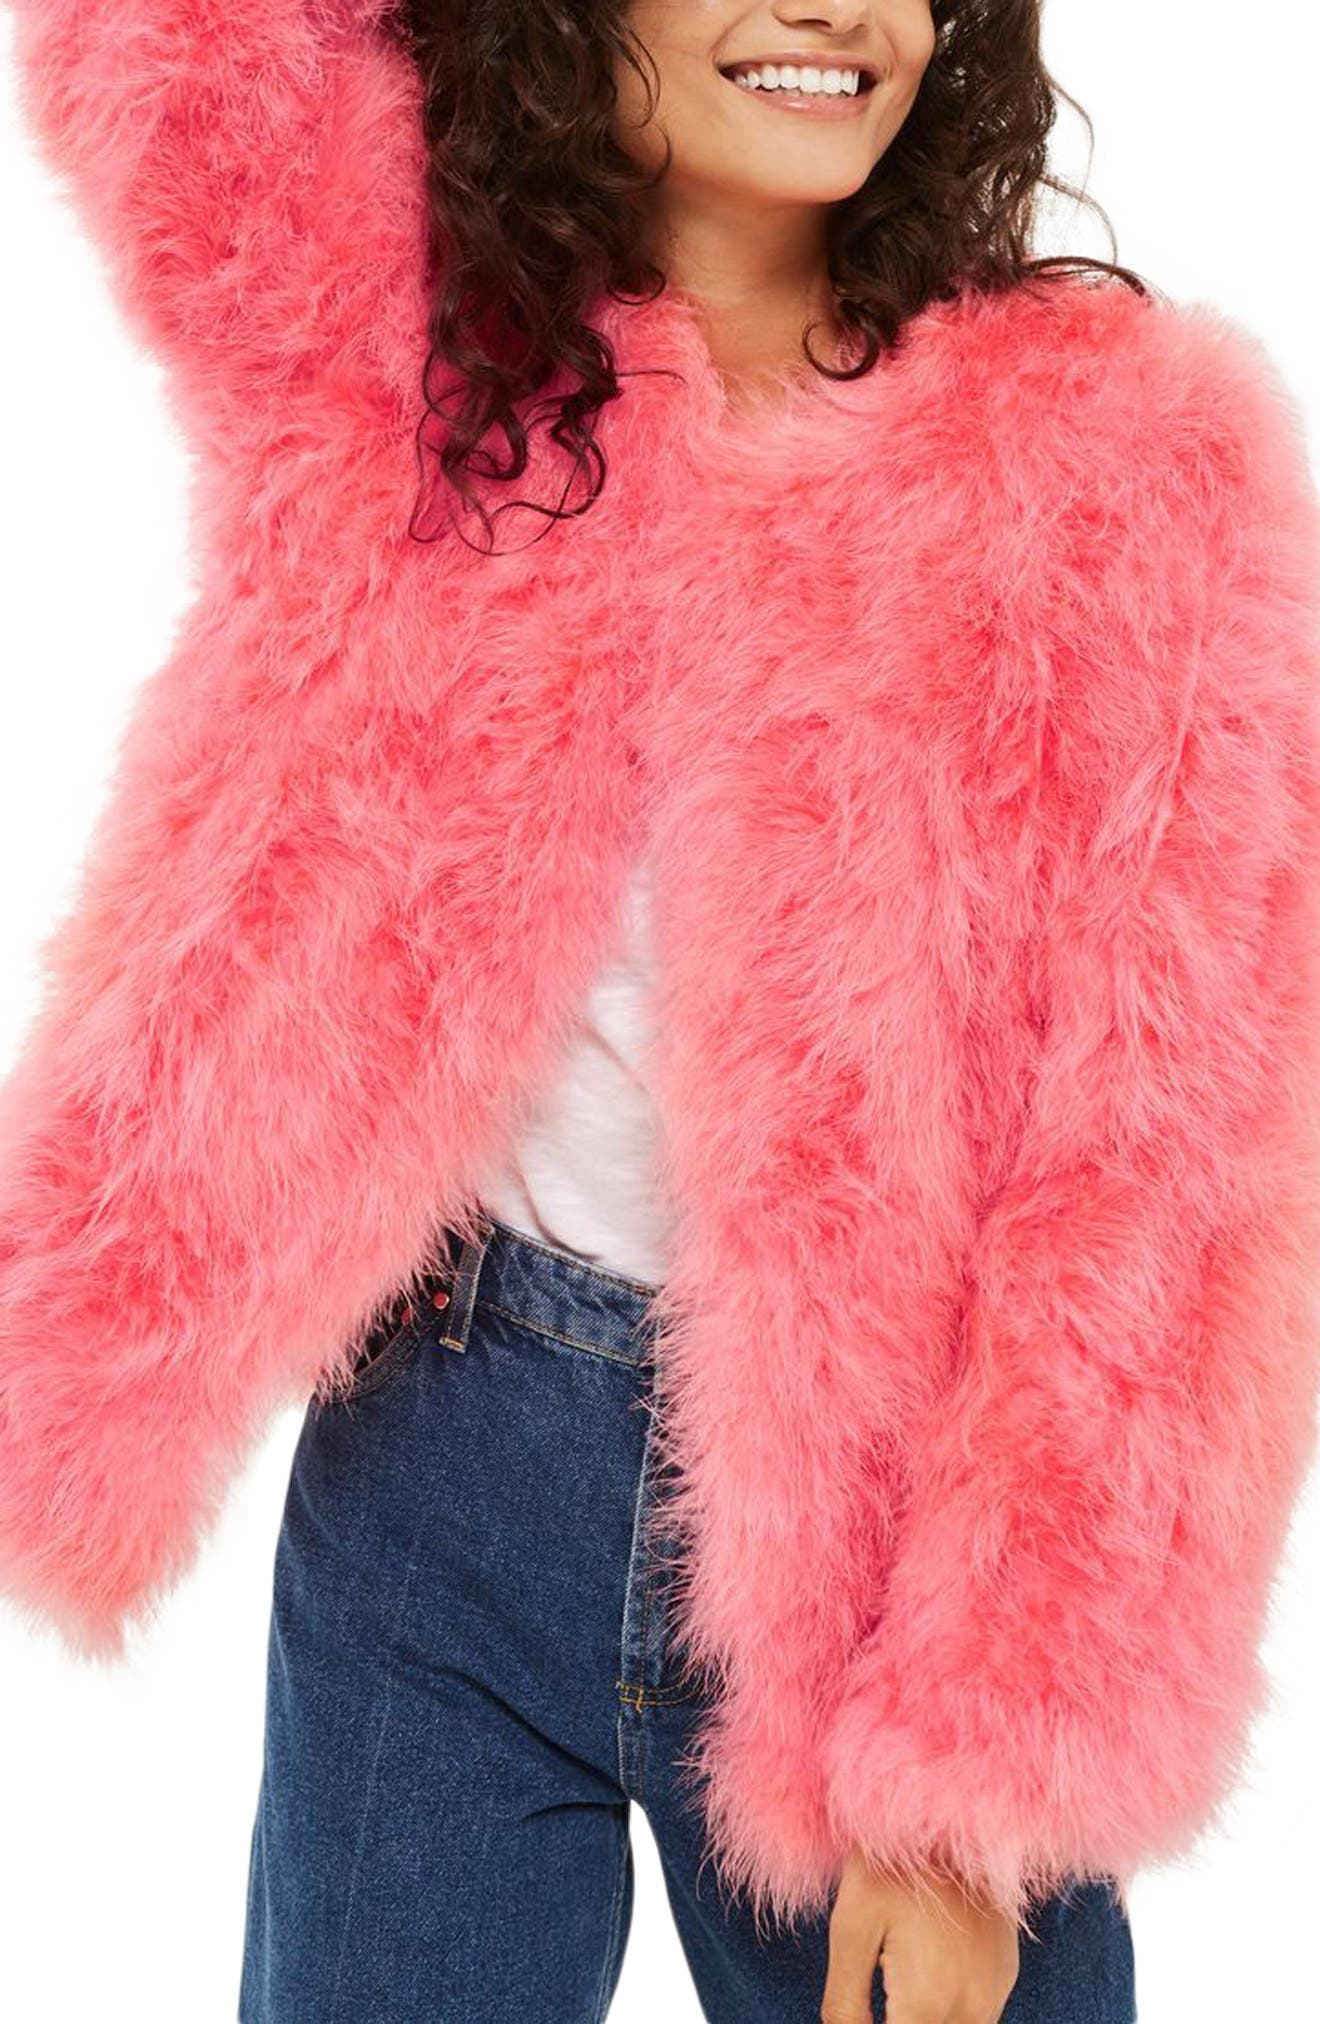 Marabou Feather Jacket,                             Alternate thumbnail 2, color,                             650